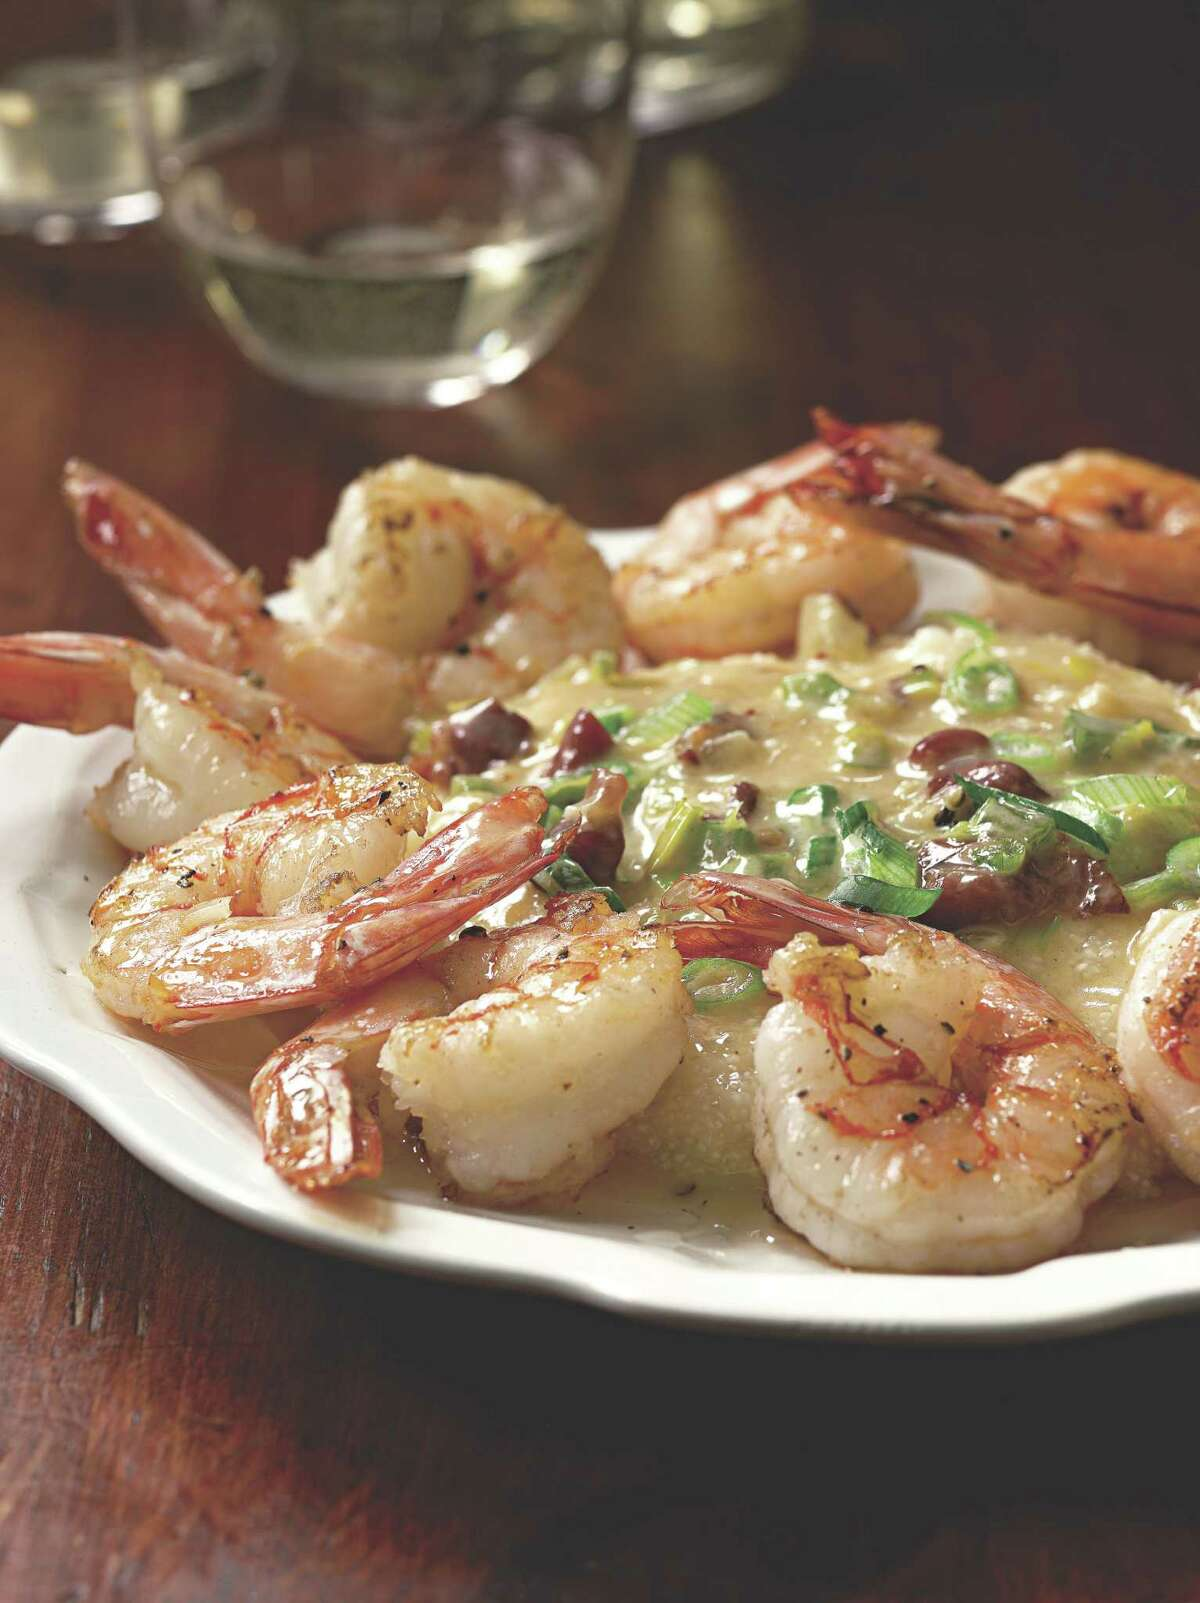 Paula Deen's Shrimp and Grits was served at her wedding to Michael Groover.